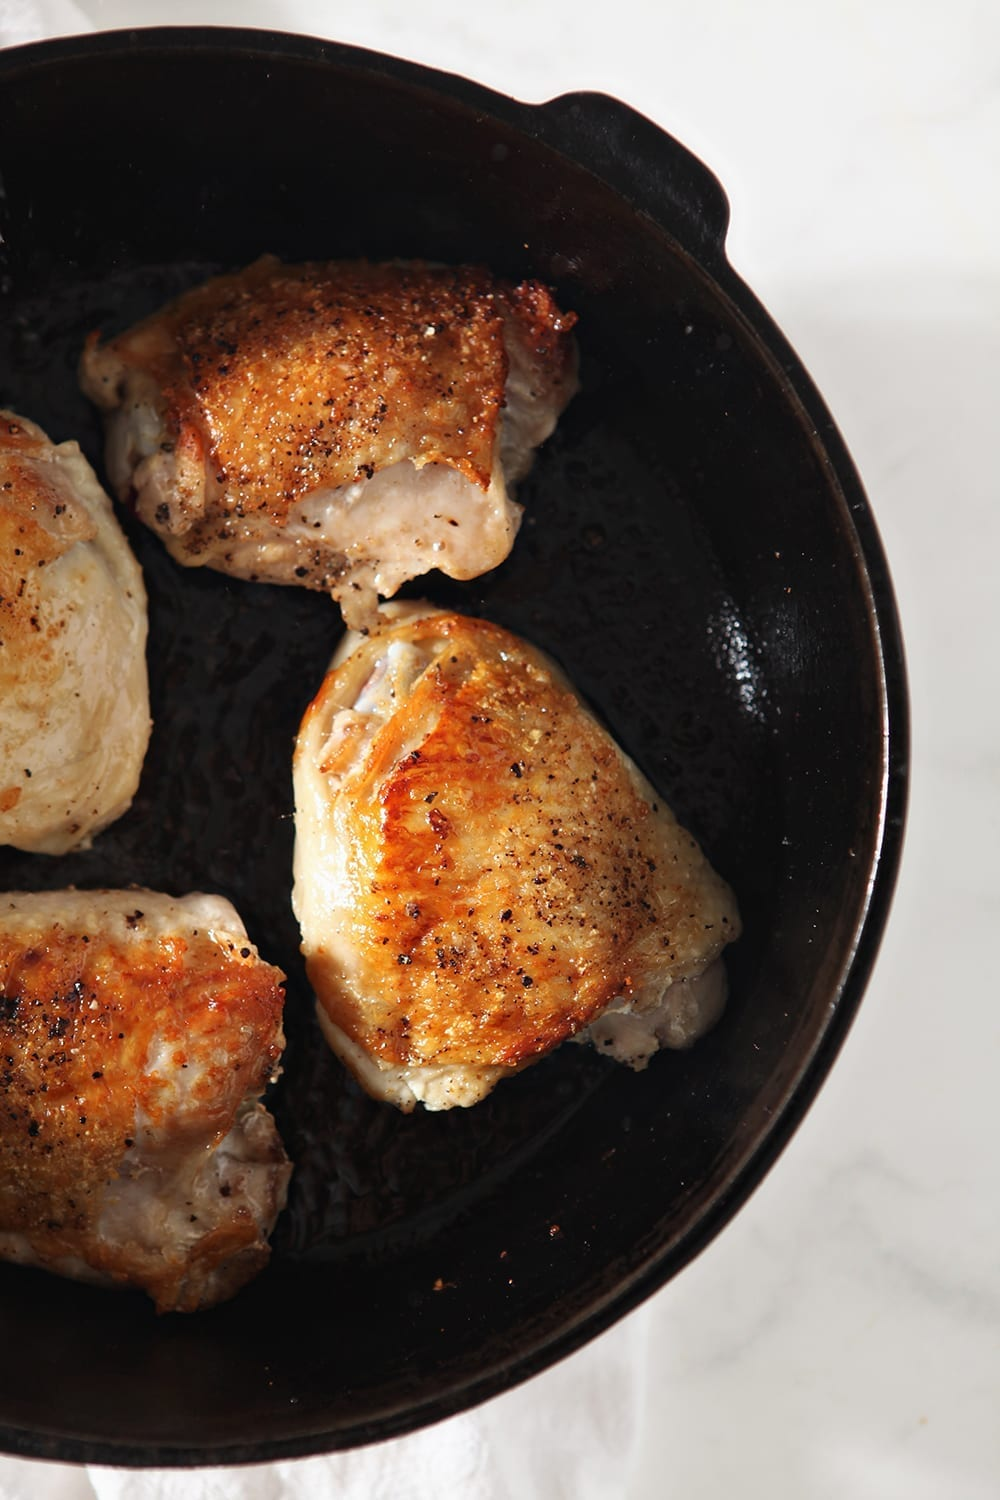 Seared bone-in, skin-on chicken thighs, in a cast iron skillet